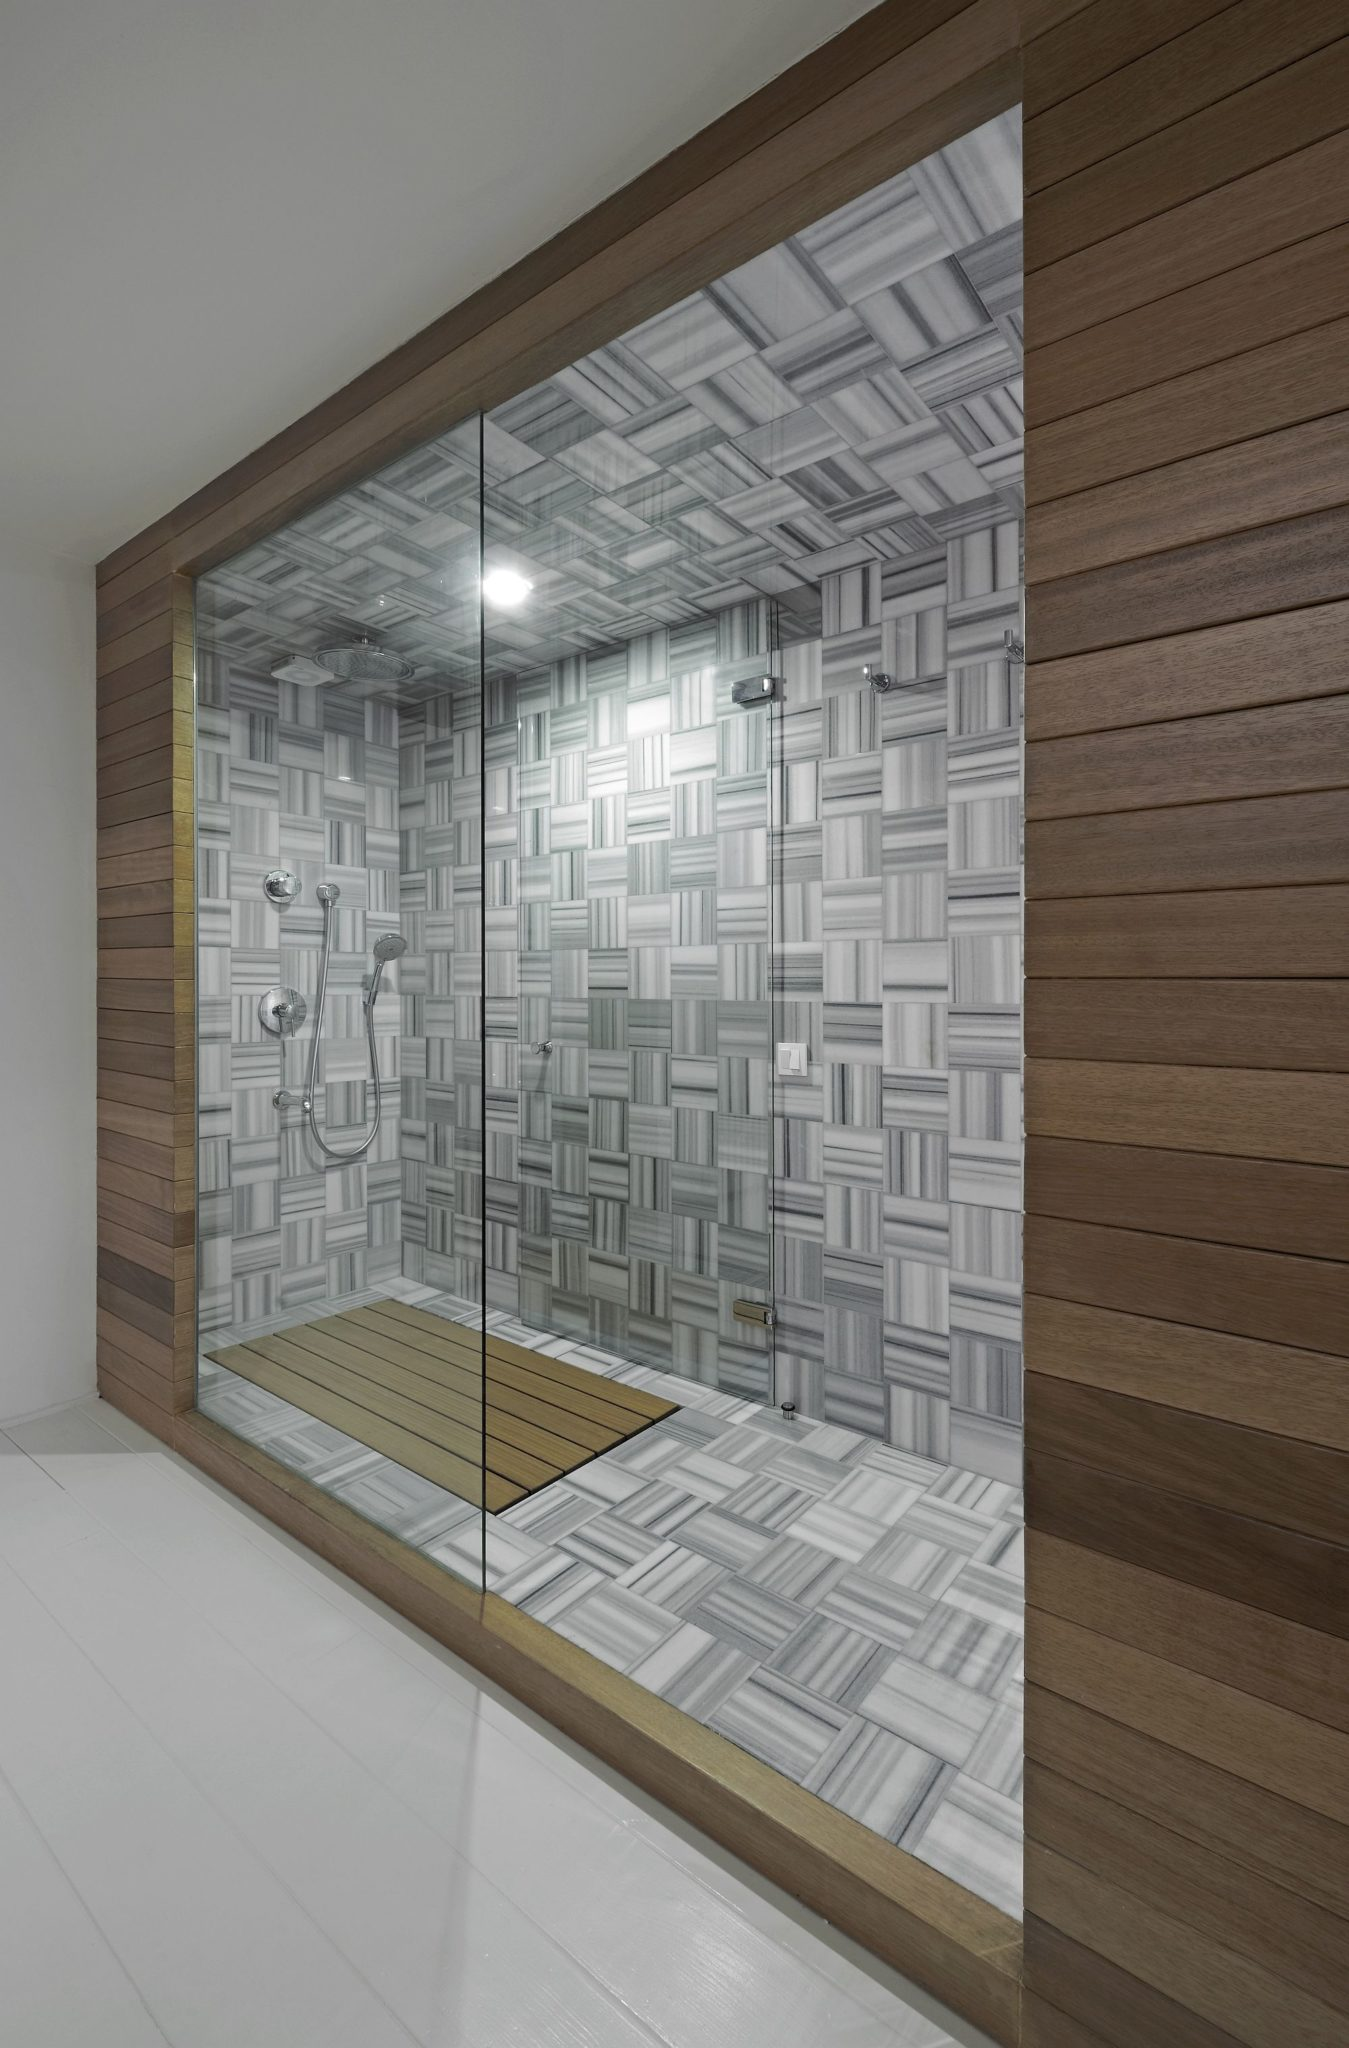 Wooden shower cabin brings warmth to the interior